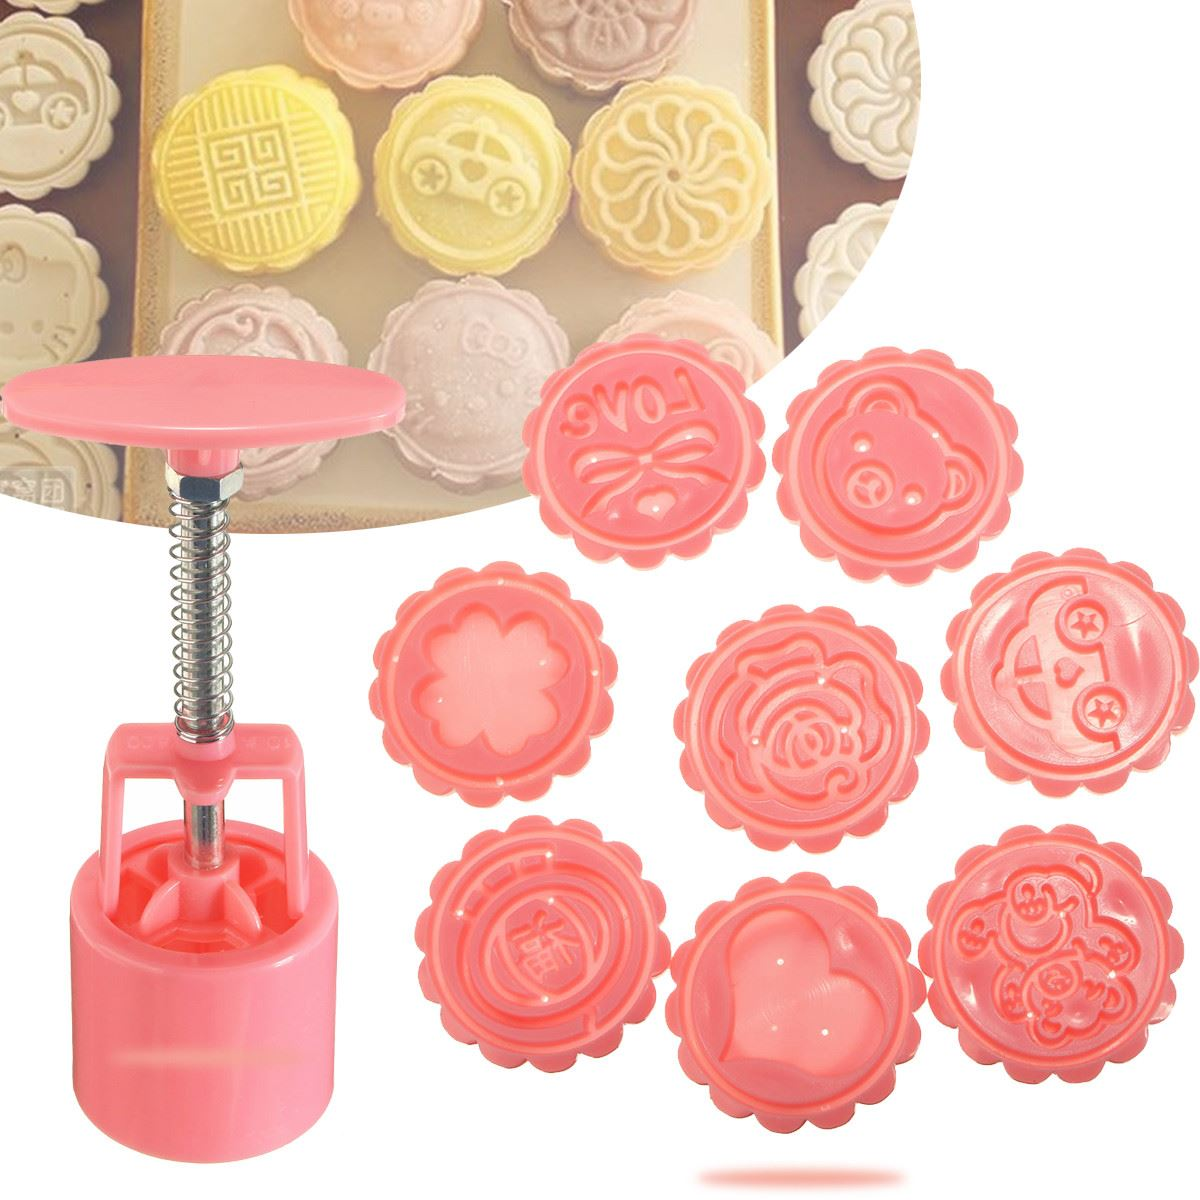 9Pcs Pink Round Moon Cake Mold Set 8 Stamps 1 Hand Press Mooncake Maker Kitchen Bakery Pastry Baking Tools Accessories Supplies(China (Mainland))